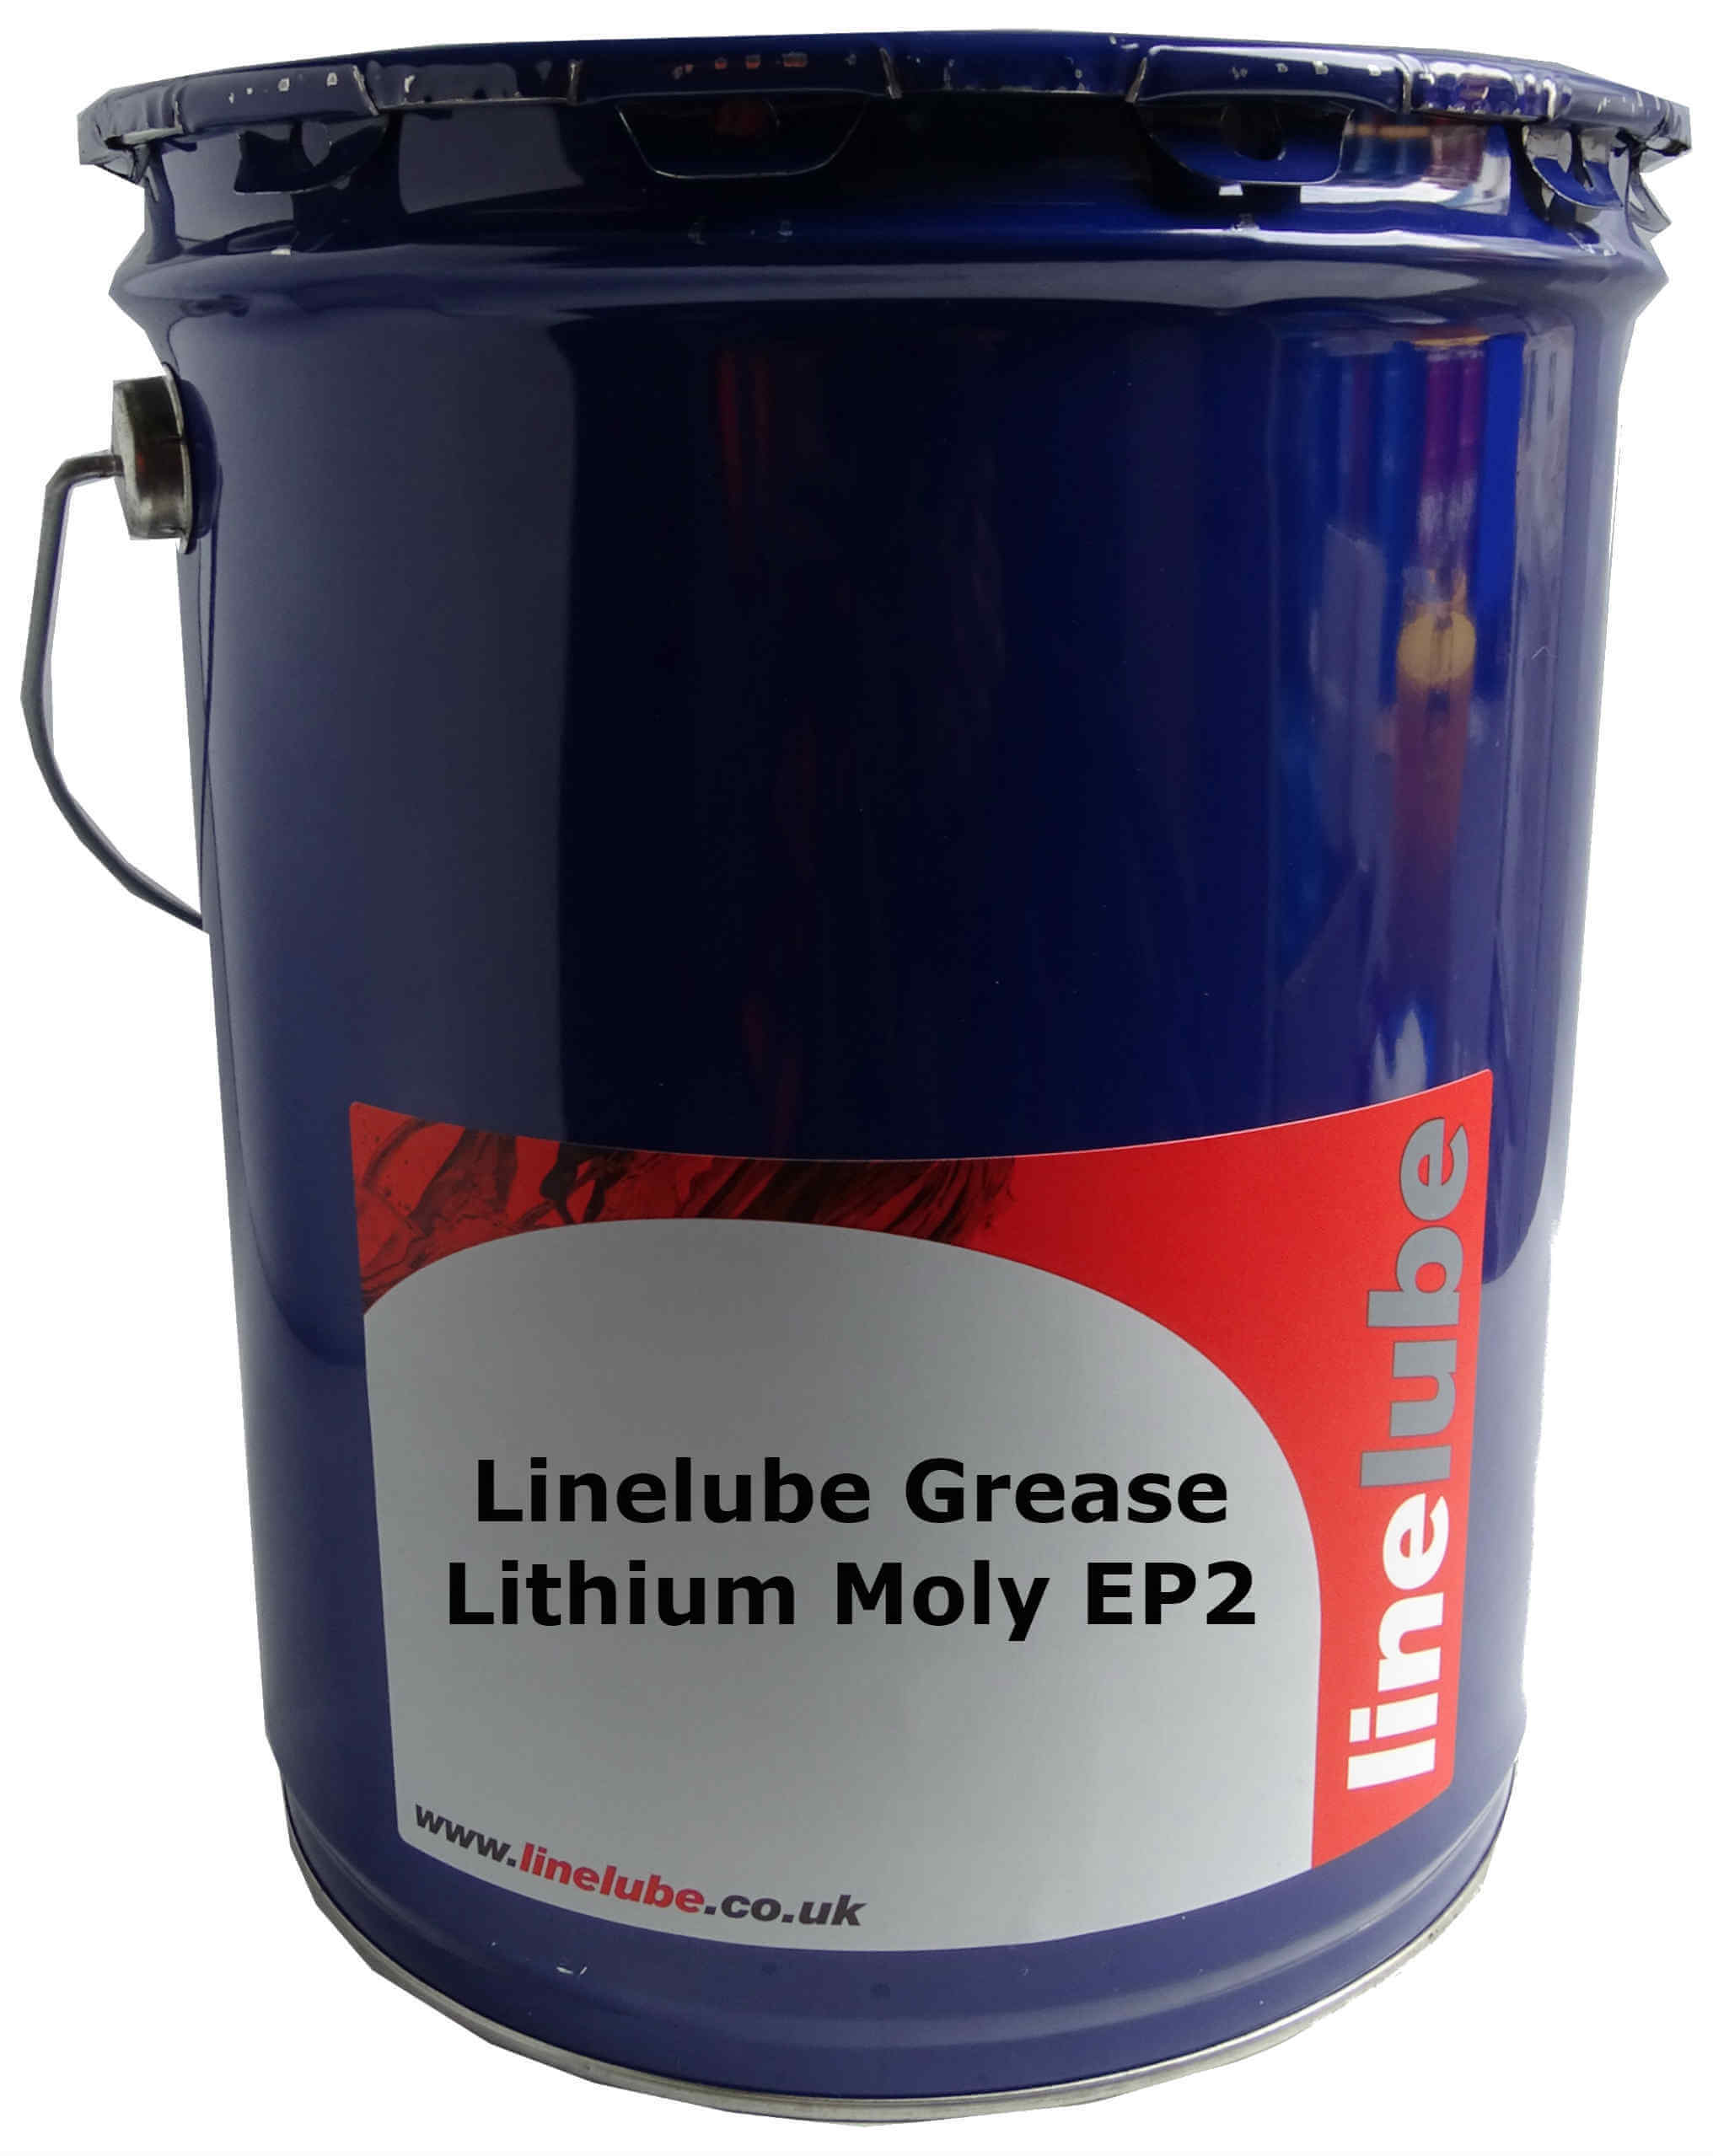 Linelube Grease Lithium Moly EP2